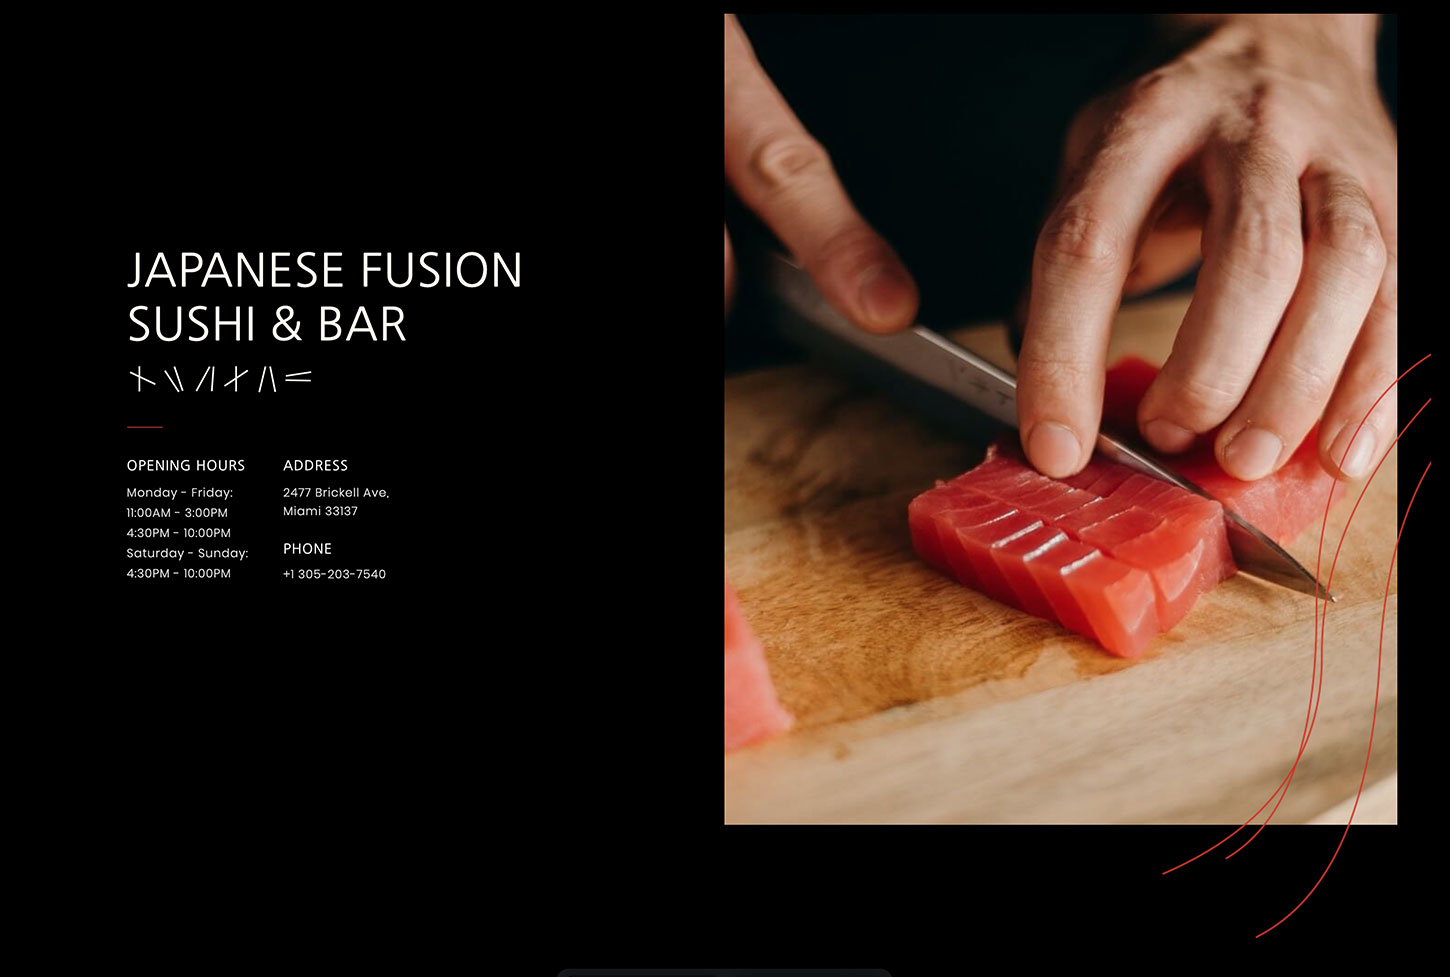 Sushi Restaurant Template - bizProWeb Website Builder Starter Skin Design